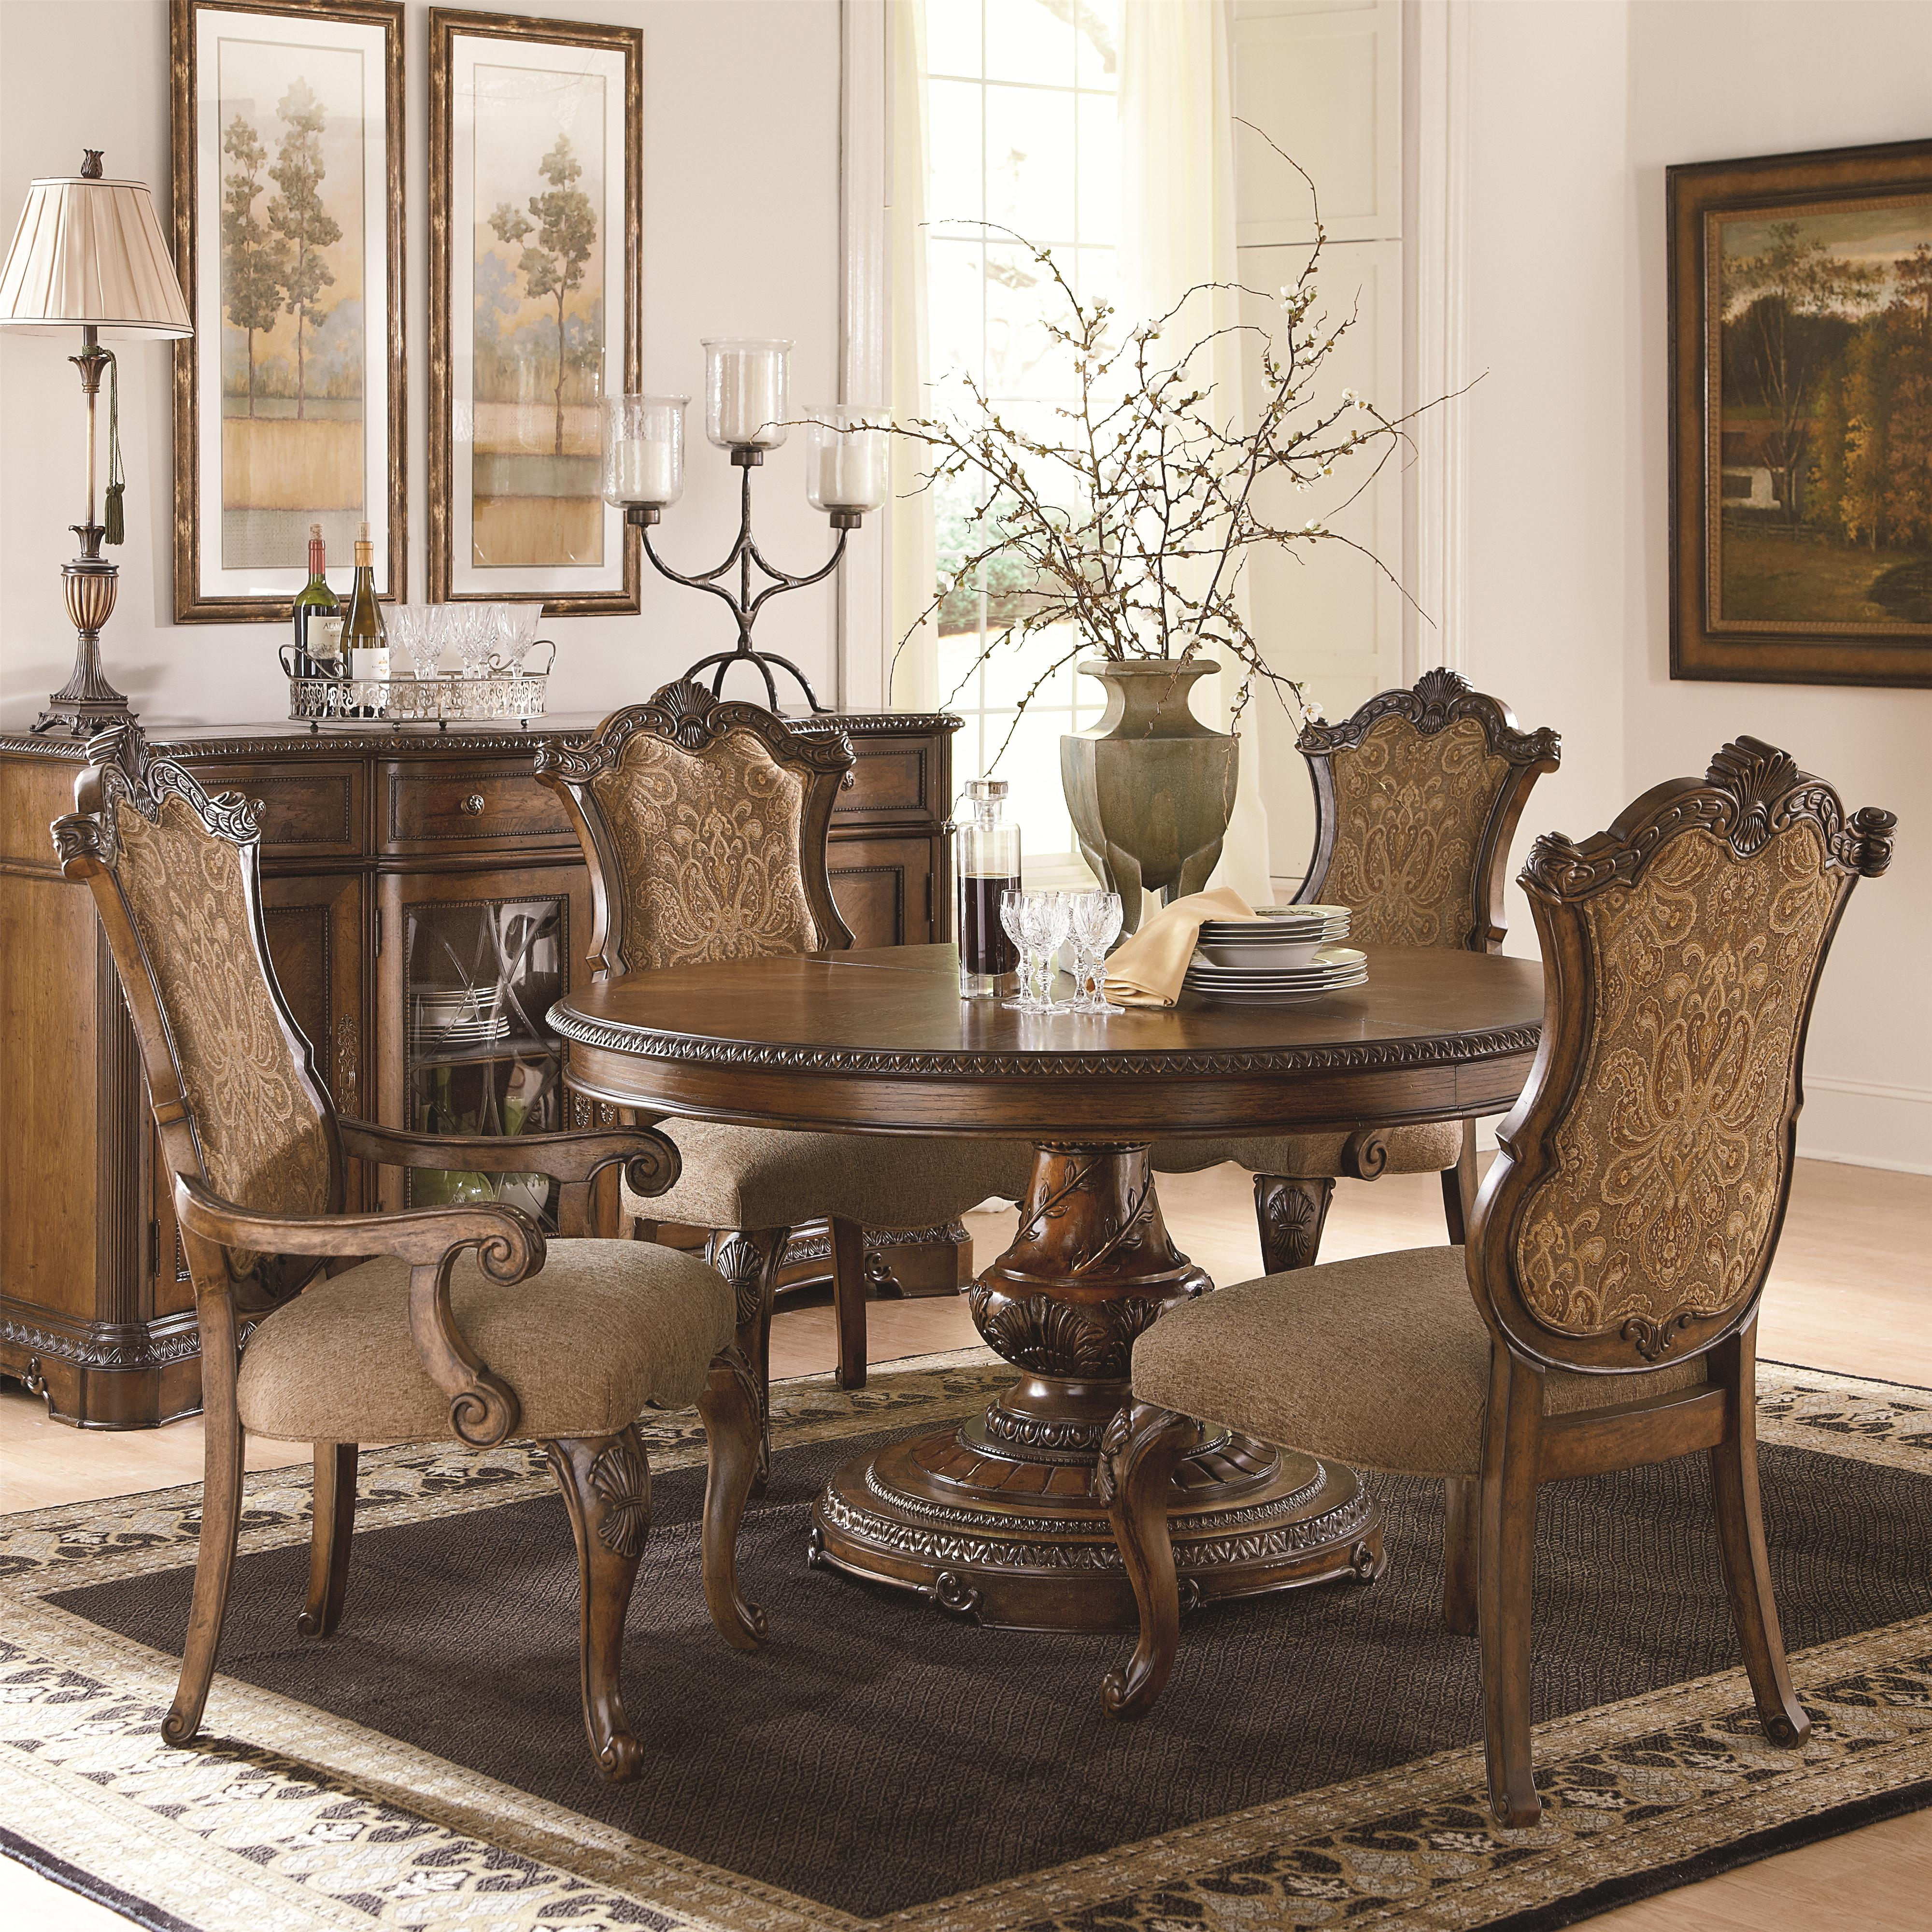 Legacy Classic Pemberleigh 5 Piece Table and Chairs Set - Item Number: 3100-521K+2x340 KD+2x341 KD